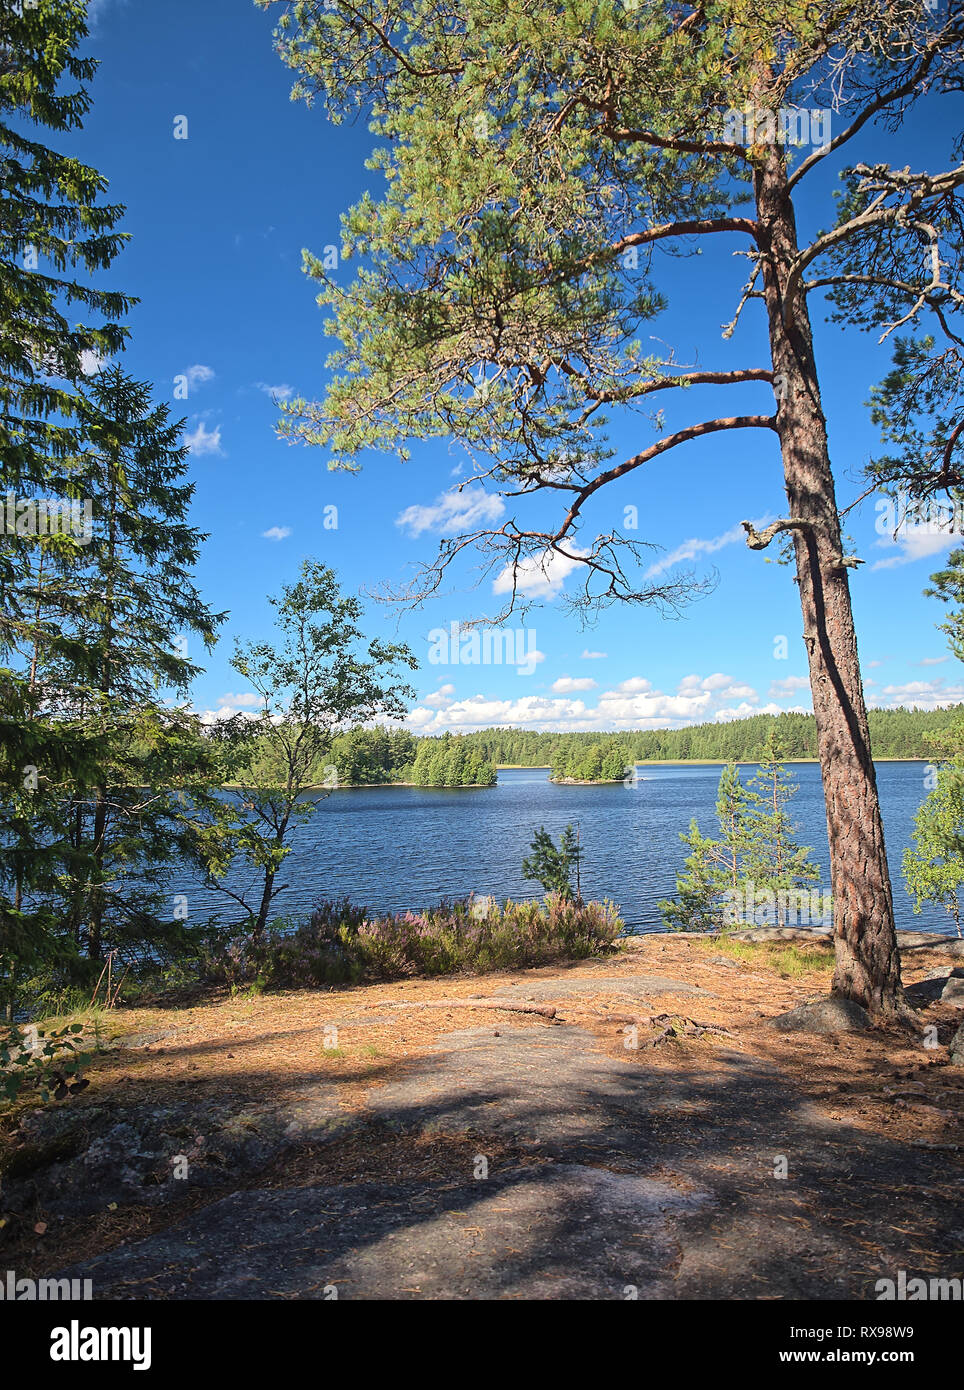 Idyllic Finnish summer lake scene at Teijo hiking trail in Salo, Finland. Big tree and the Matildajarvi lake on the background. - Stock Image